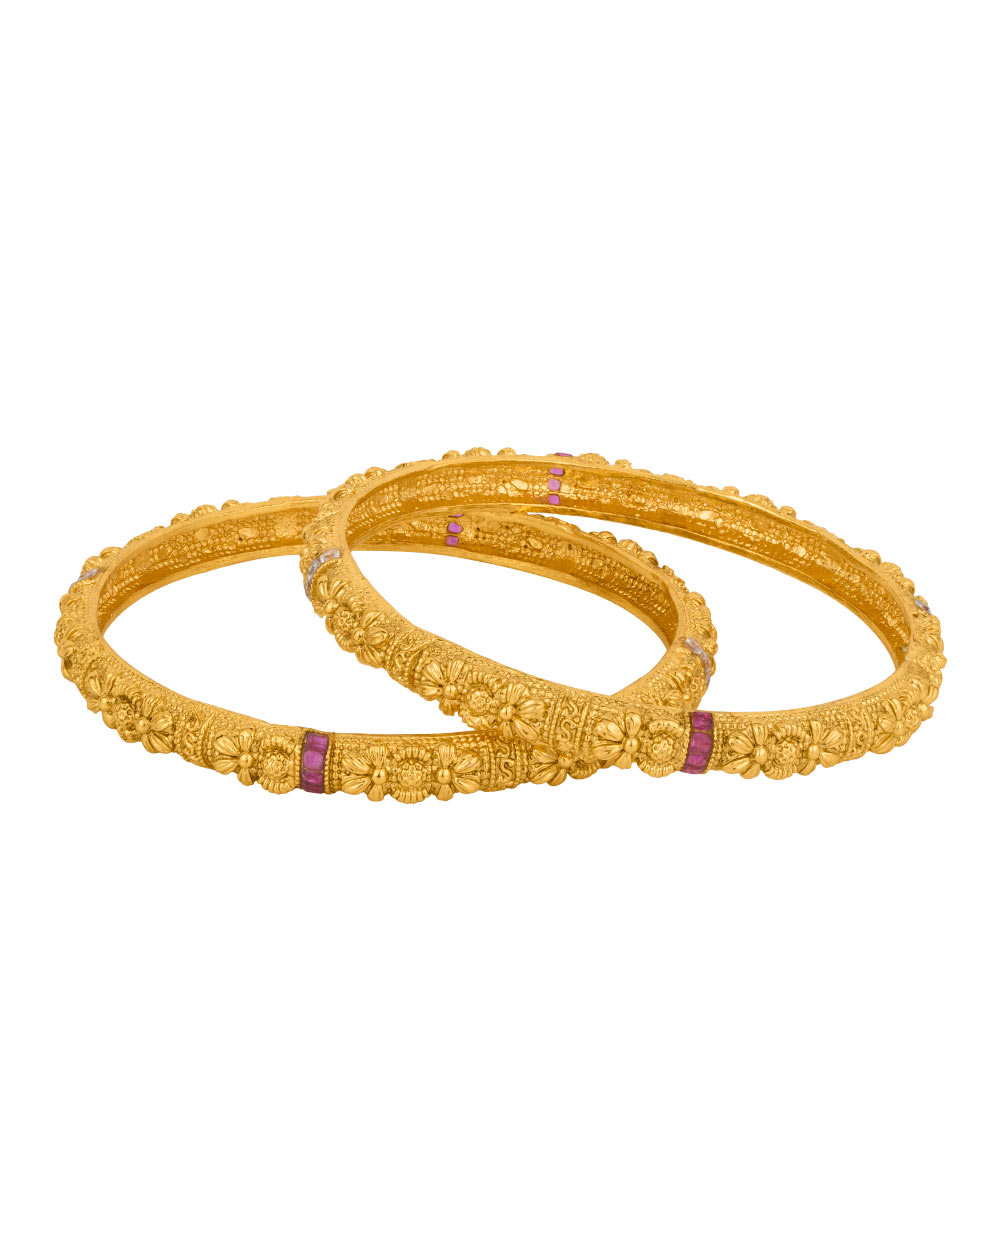 Voylla offers Gold Plated Floral Charming Band Bangles